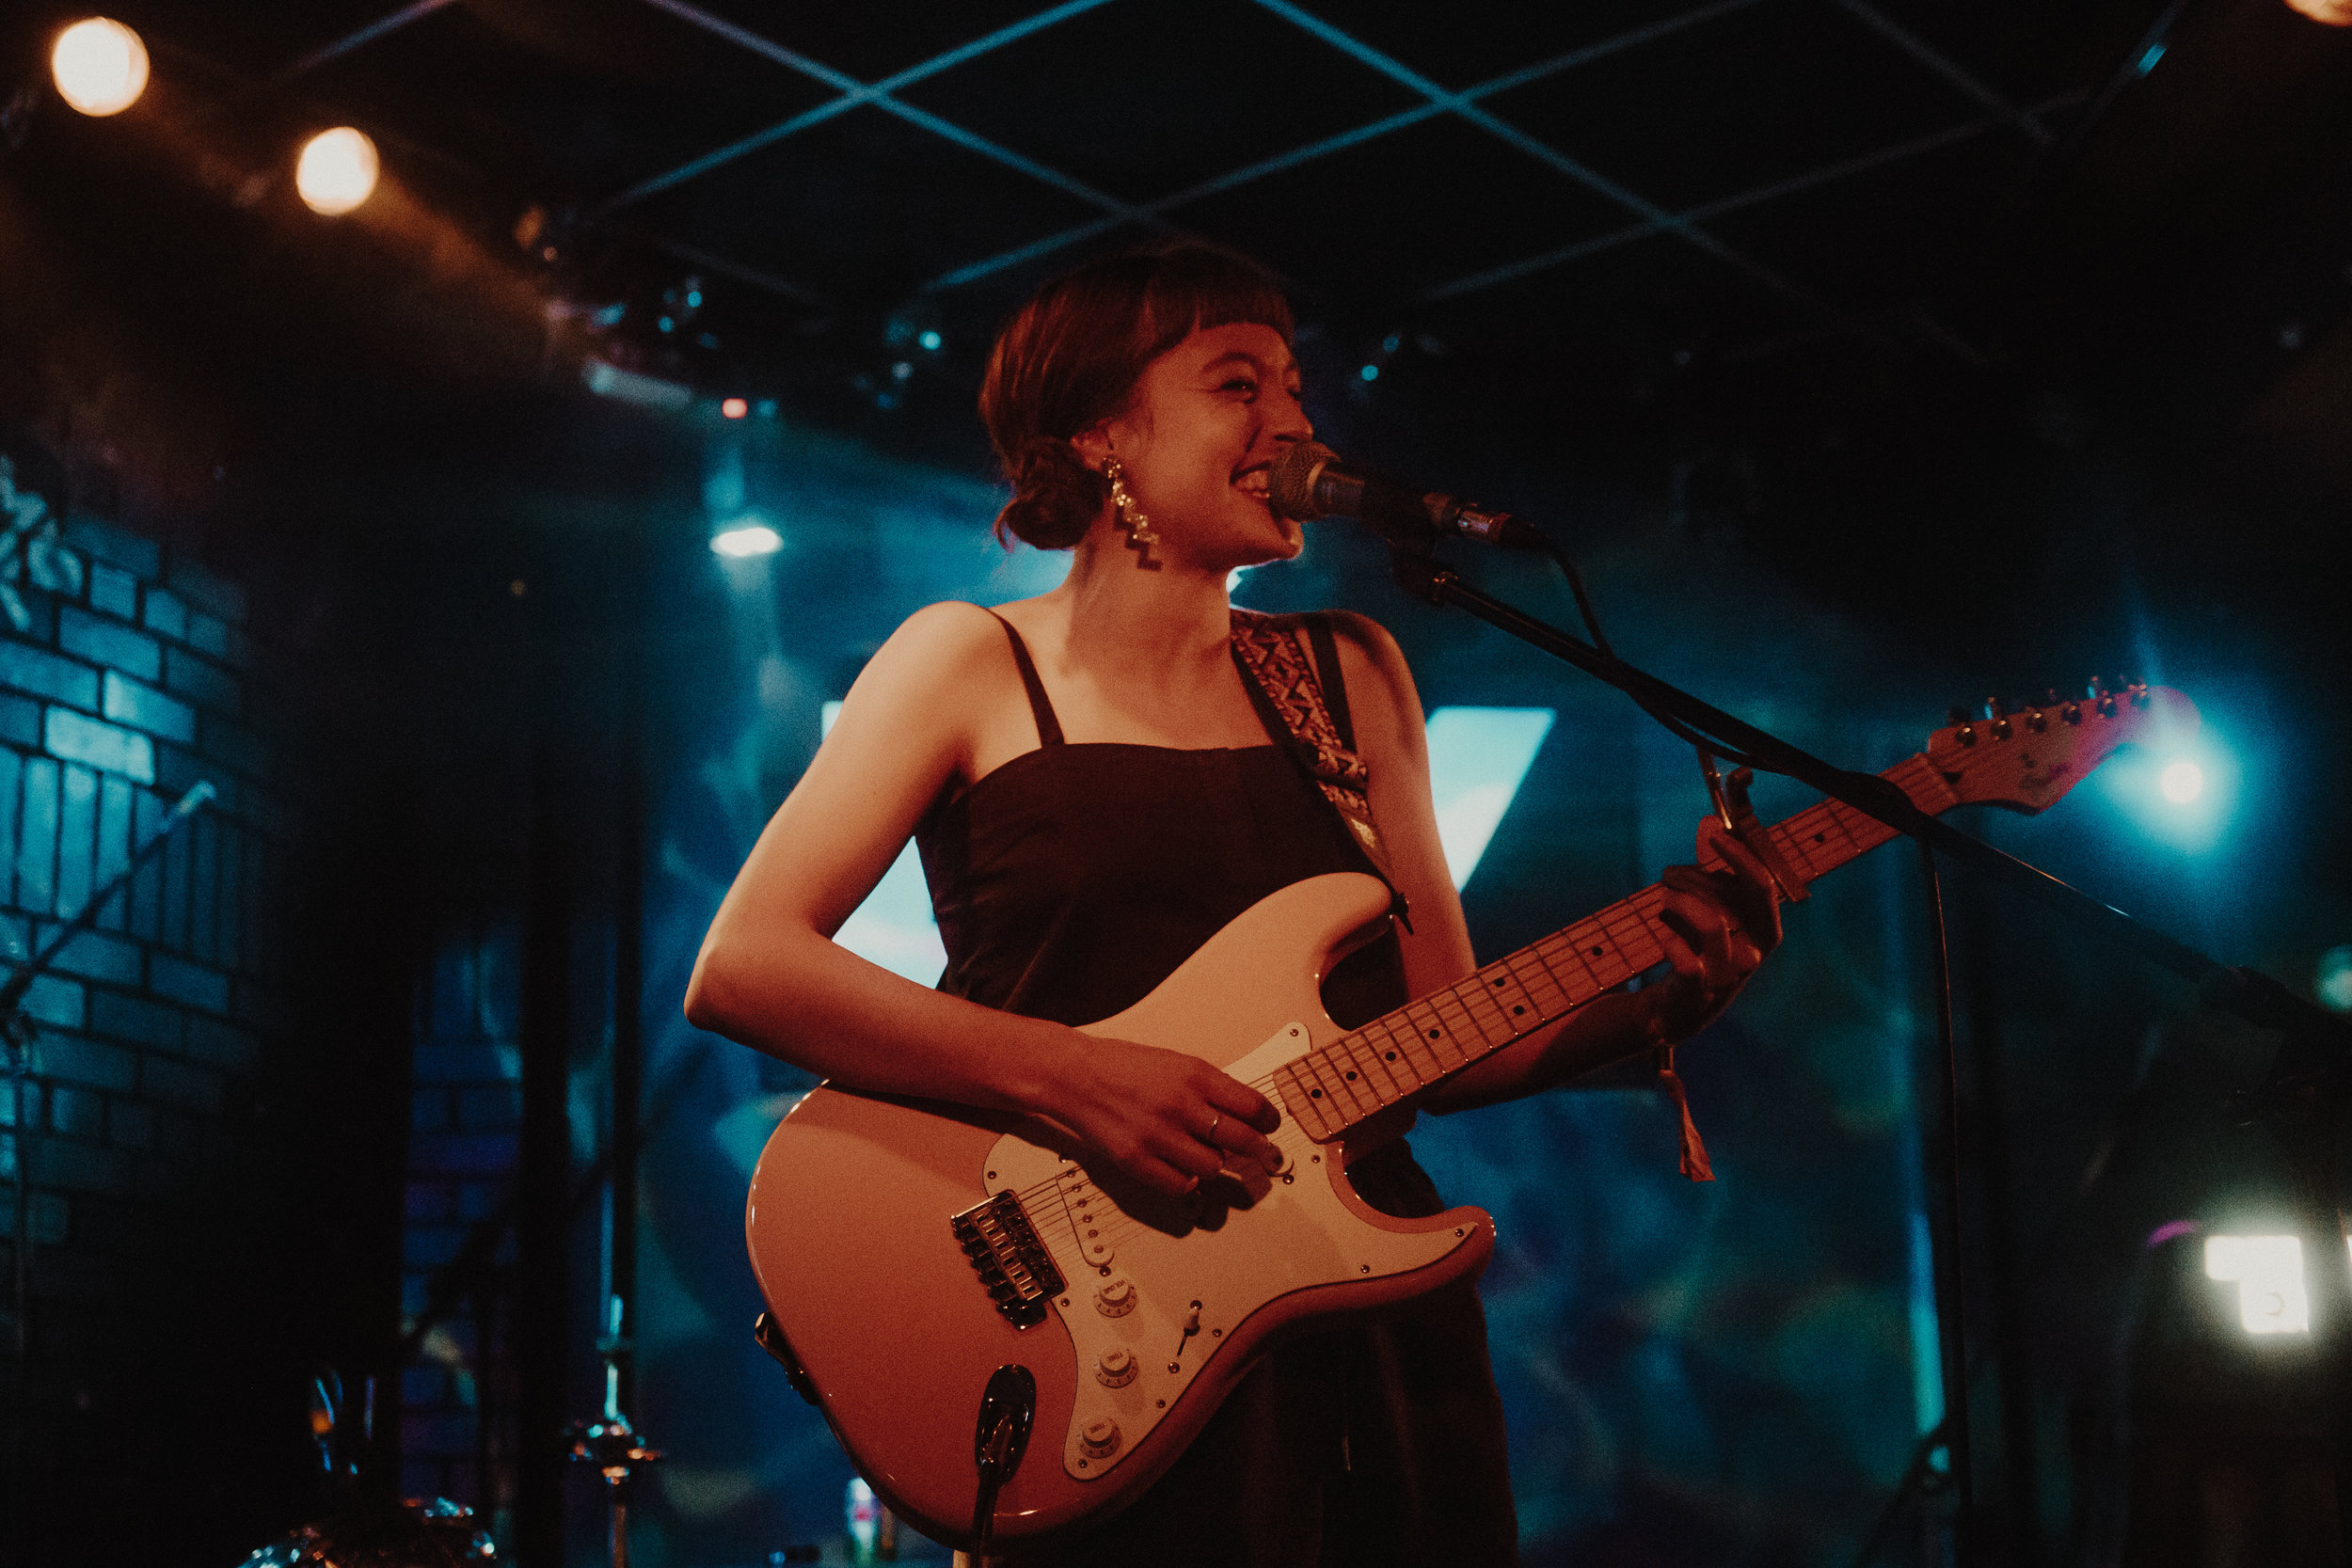 Stella Donnelly at Live at Leeds - Photo shot by Tom Russell for © Concentus Music - Reproduction without permission not permitted